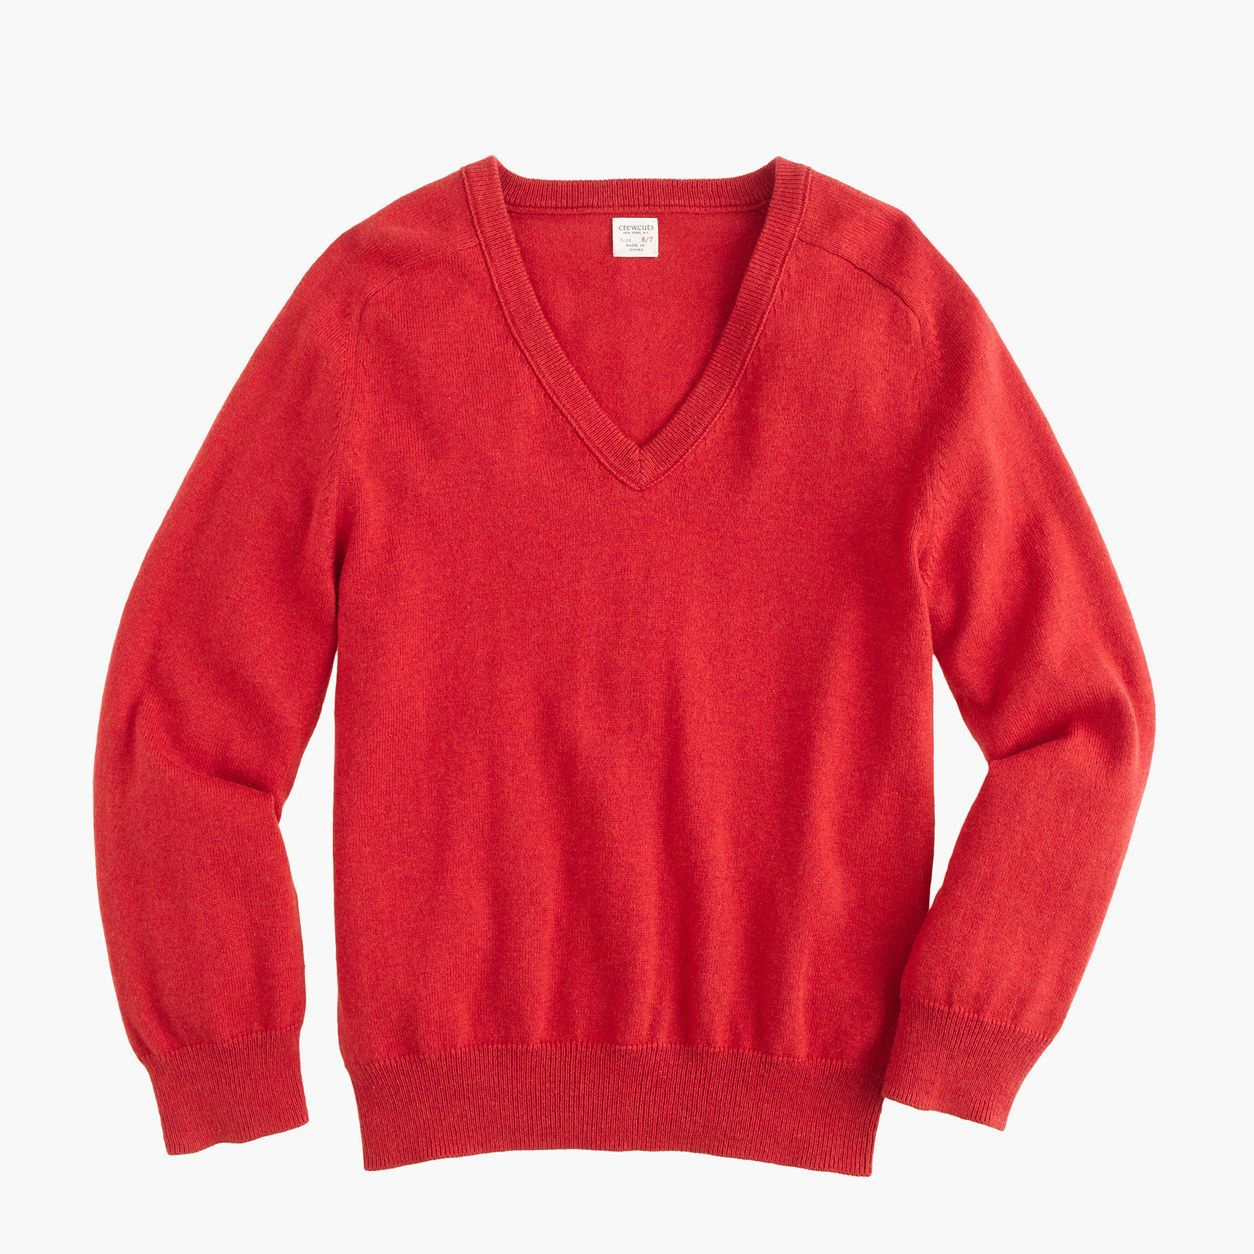 786881154 crewcuts Boys Cotton-Cashmere V-Neck Sweater (Size 6-7 Kid ...